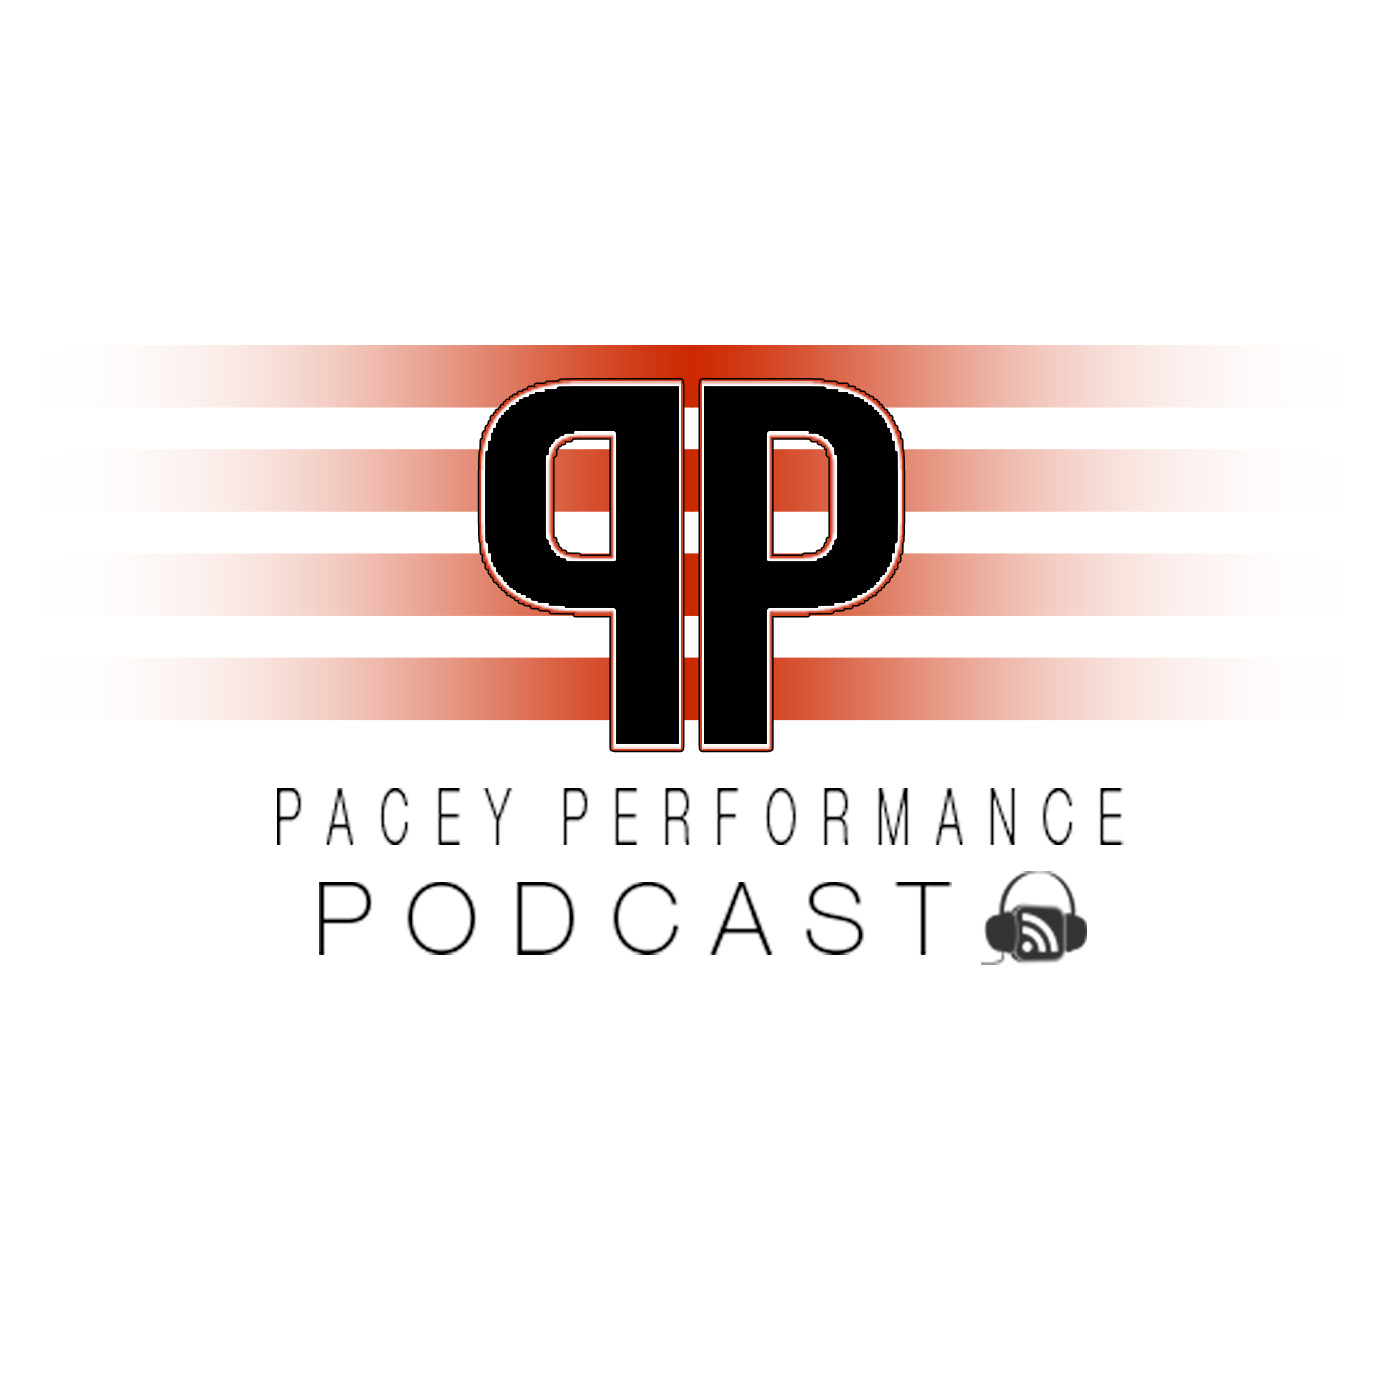 Pacey Performance Podcast #17 - Andy McKenzie